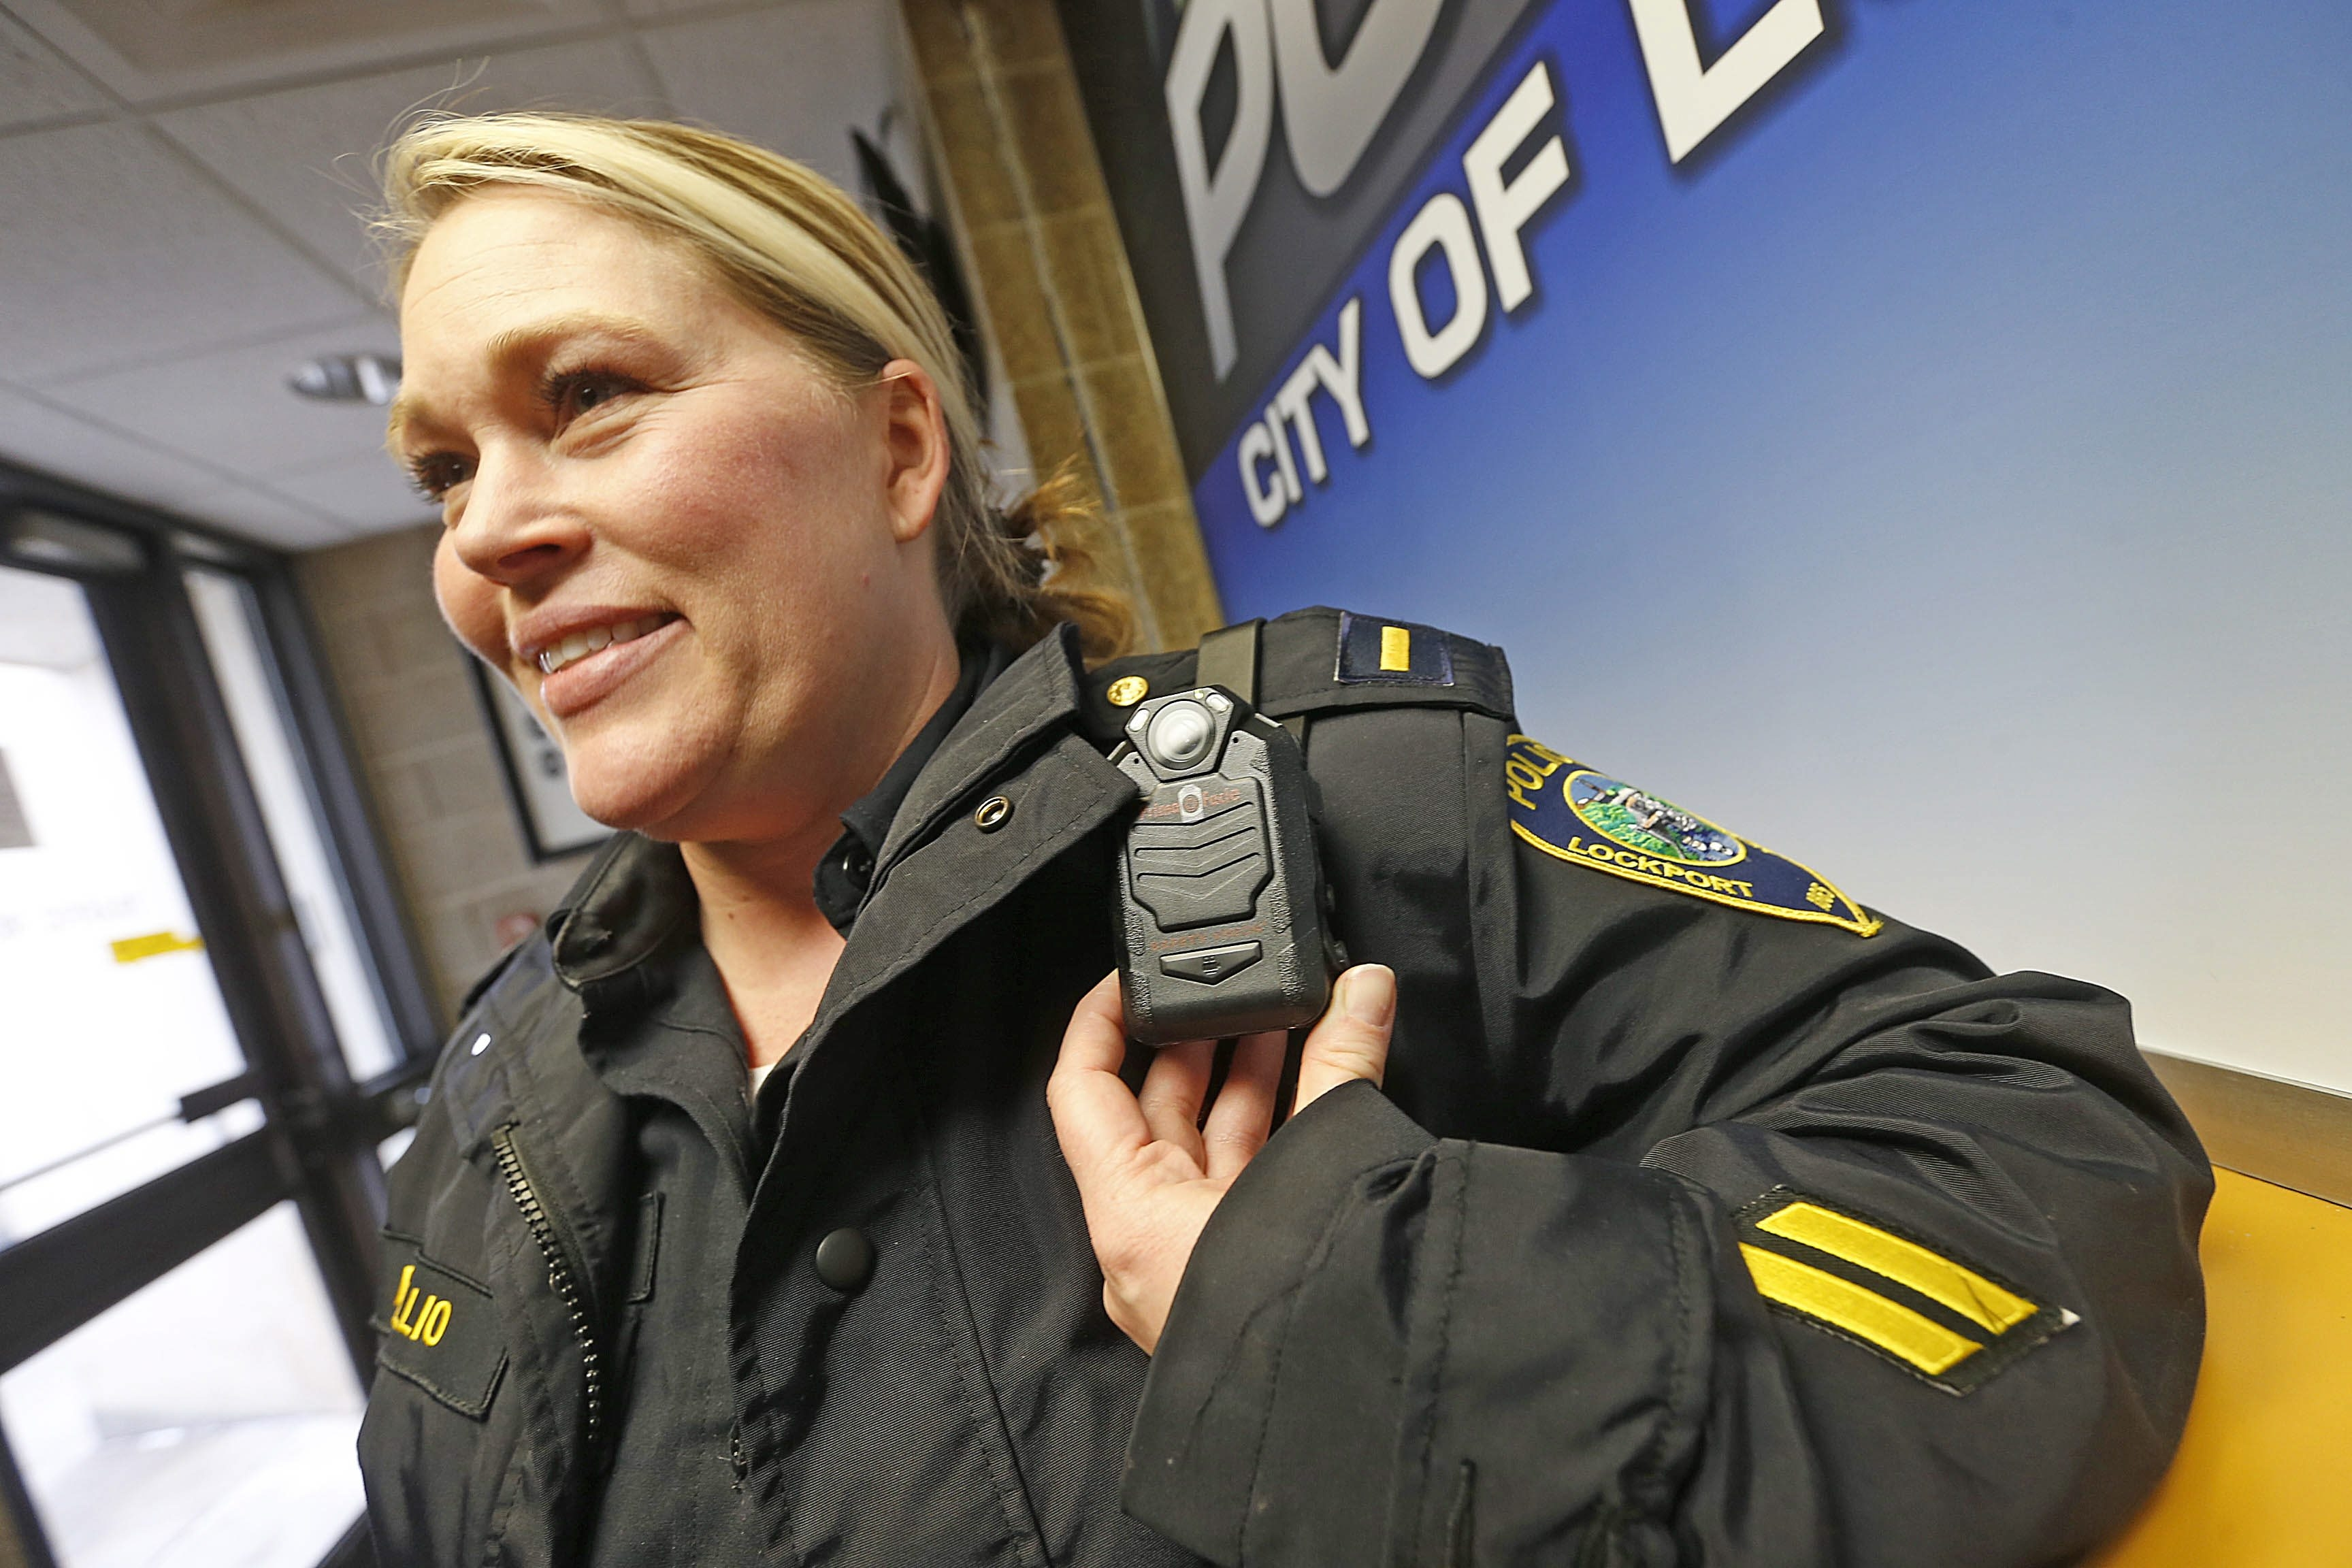 Lockport Police Squad Lt. Kendra DiTullio displays one of the department's new police body cameras, which will soon be standard issue. Lockport is one of several agencies in the county using or planning to use the new technology.